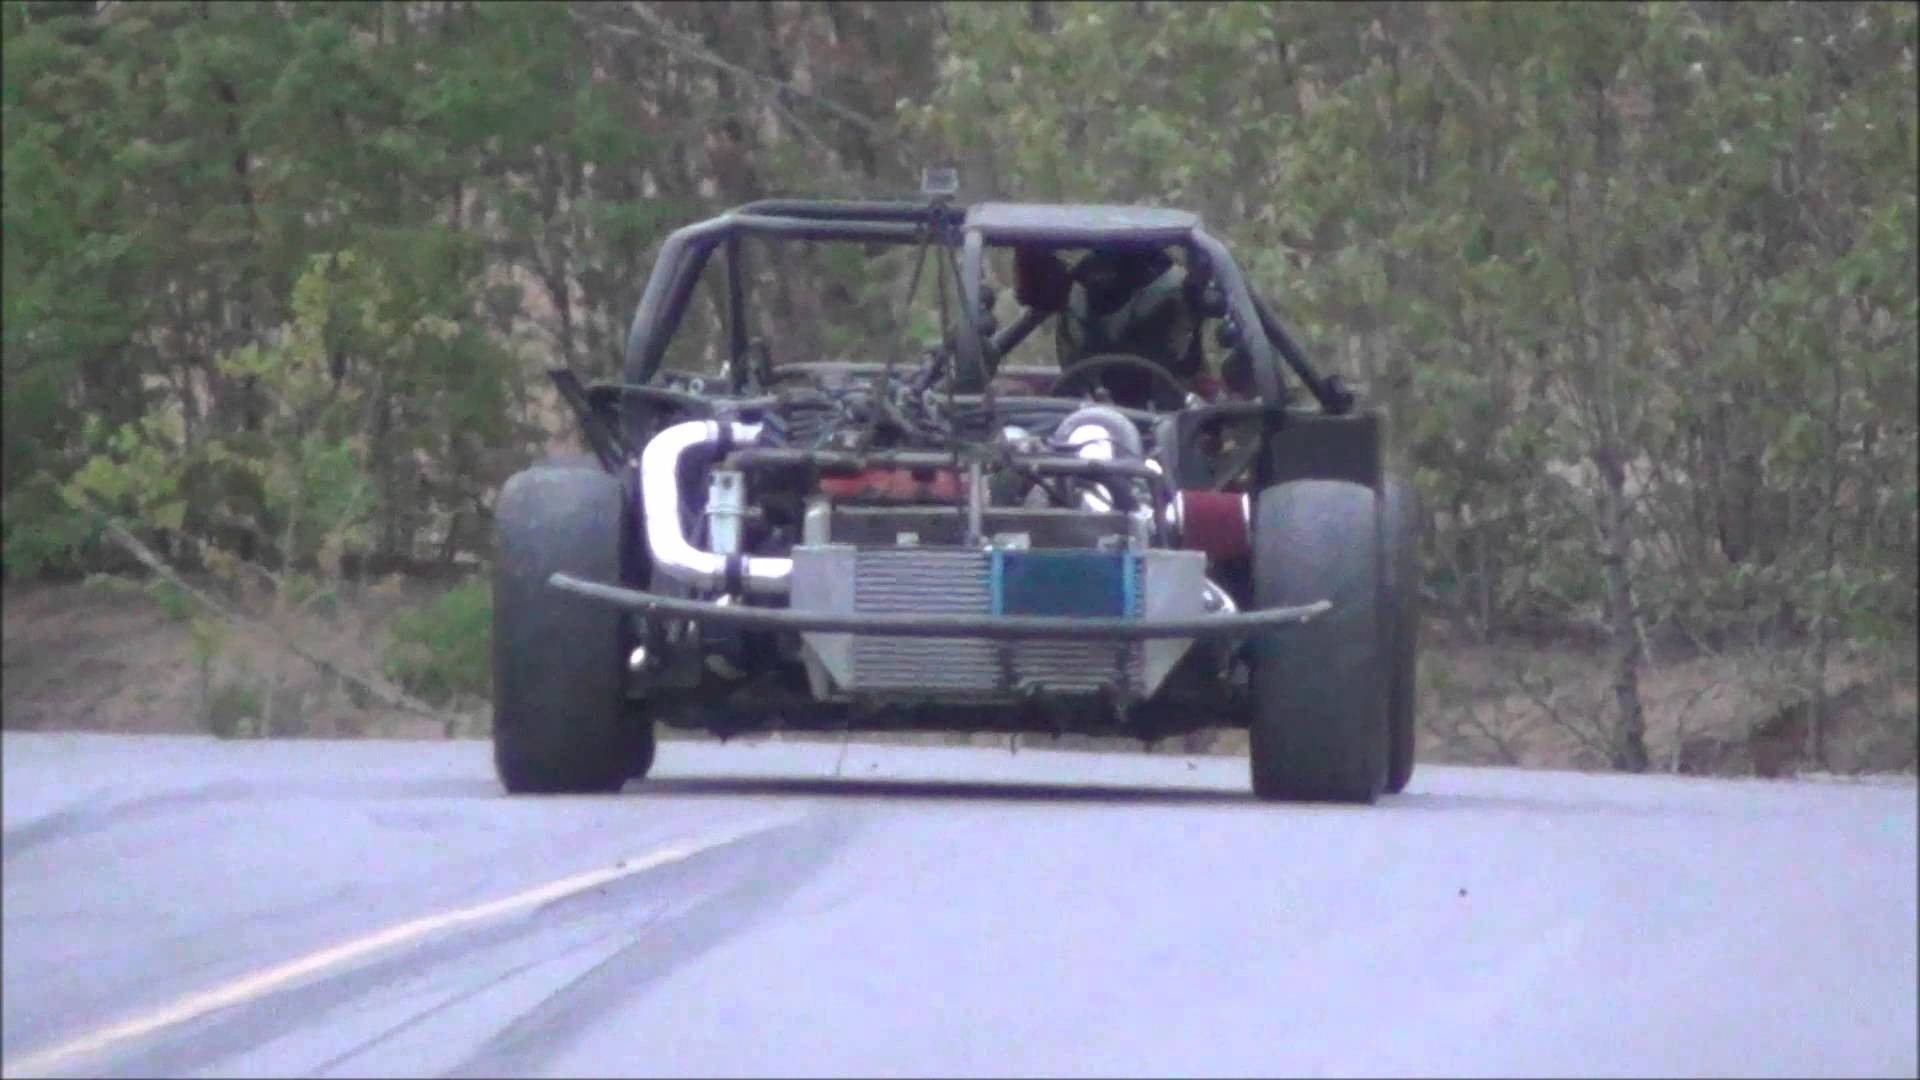 this-1300hp-awd-car-has-two-engi-1